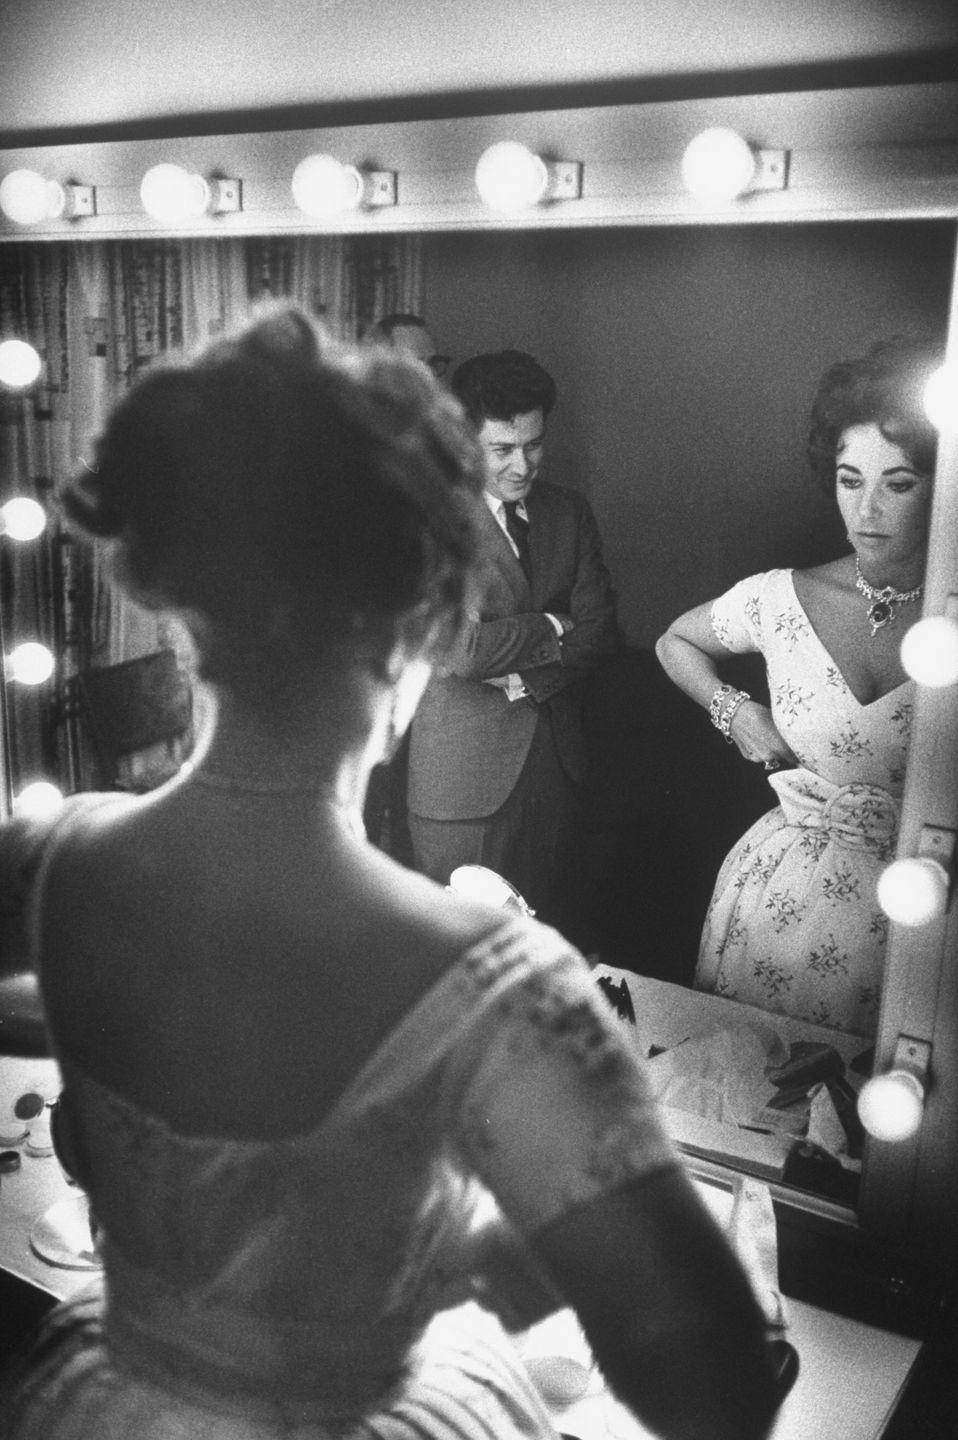 <p>Eddie Fisher and Elizabeth Taylor before his show in 1959. Fisher's first wife, Debbie Reynolds, was Taylor's best friend at the time of his first marriage.</p>